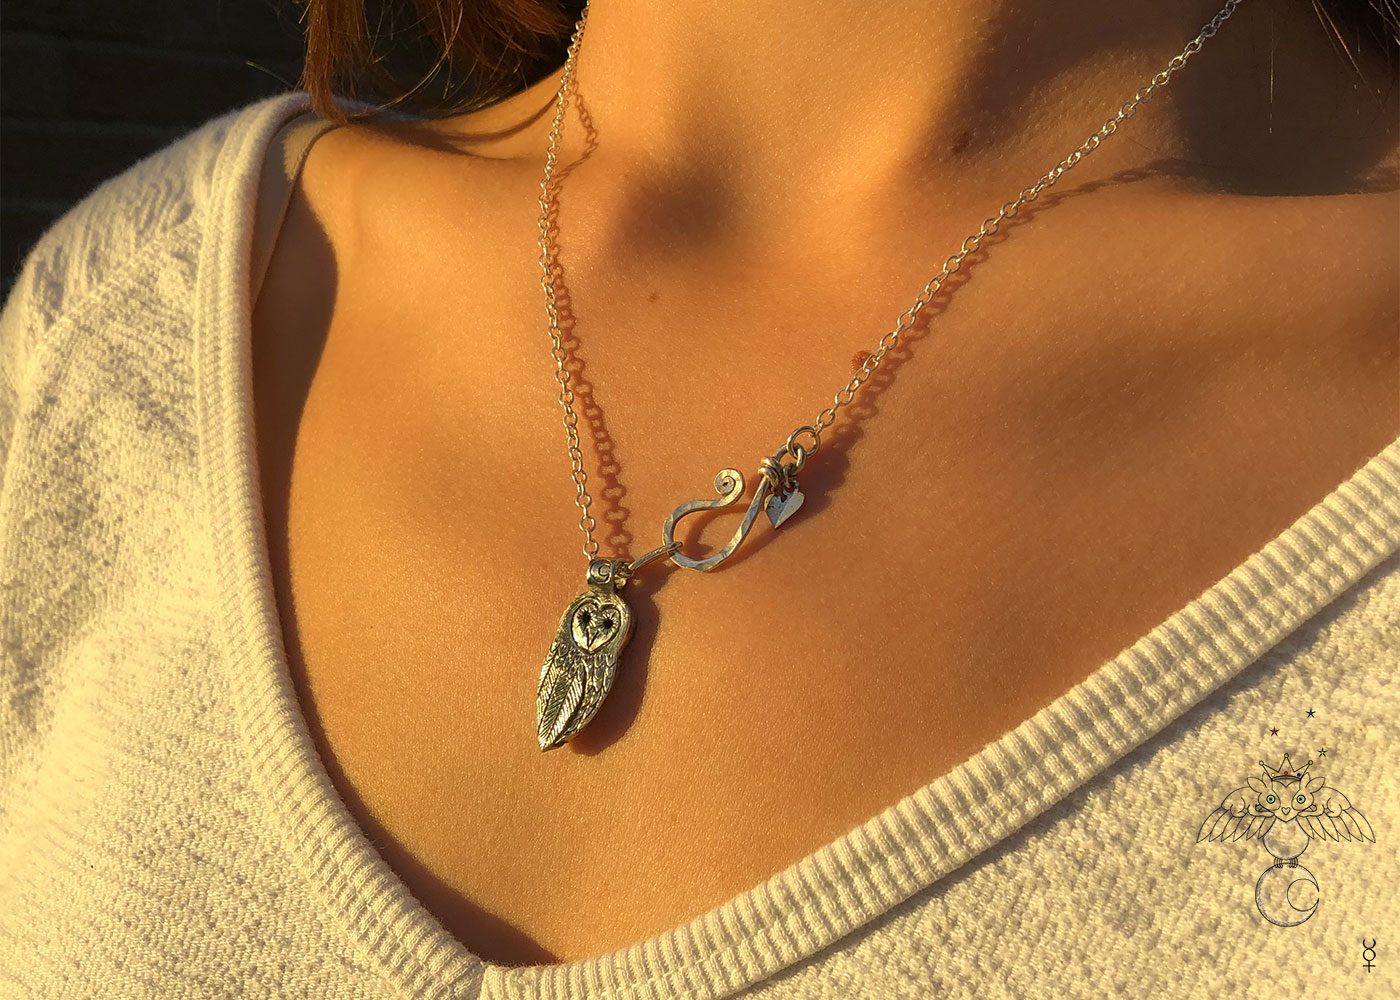 Owl necklace handmade and recycled coin jewellery. Independent artisan jeweller studio workshop specialising in nature themes. Each piece is ethically made and original.